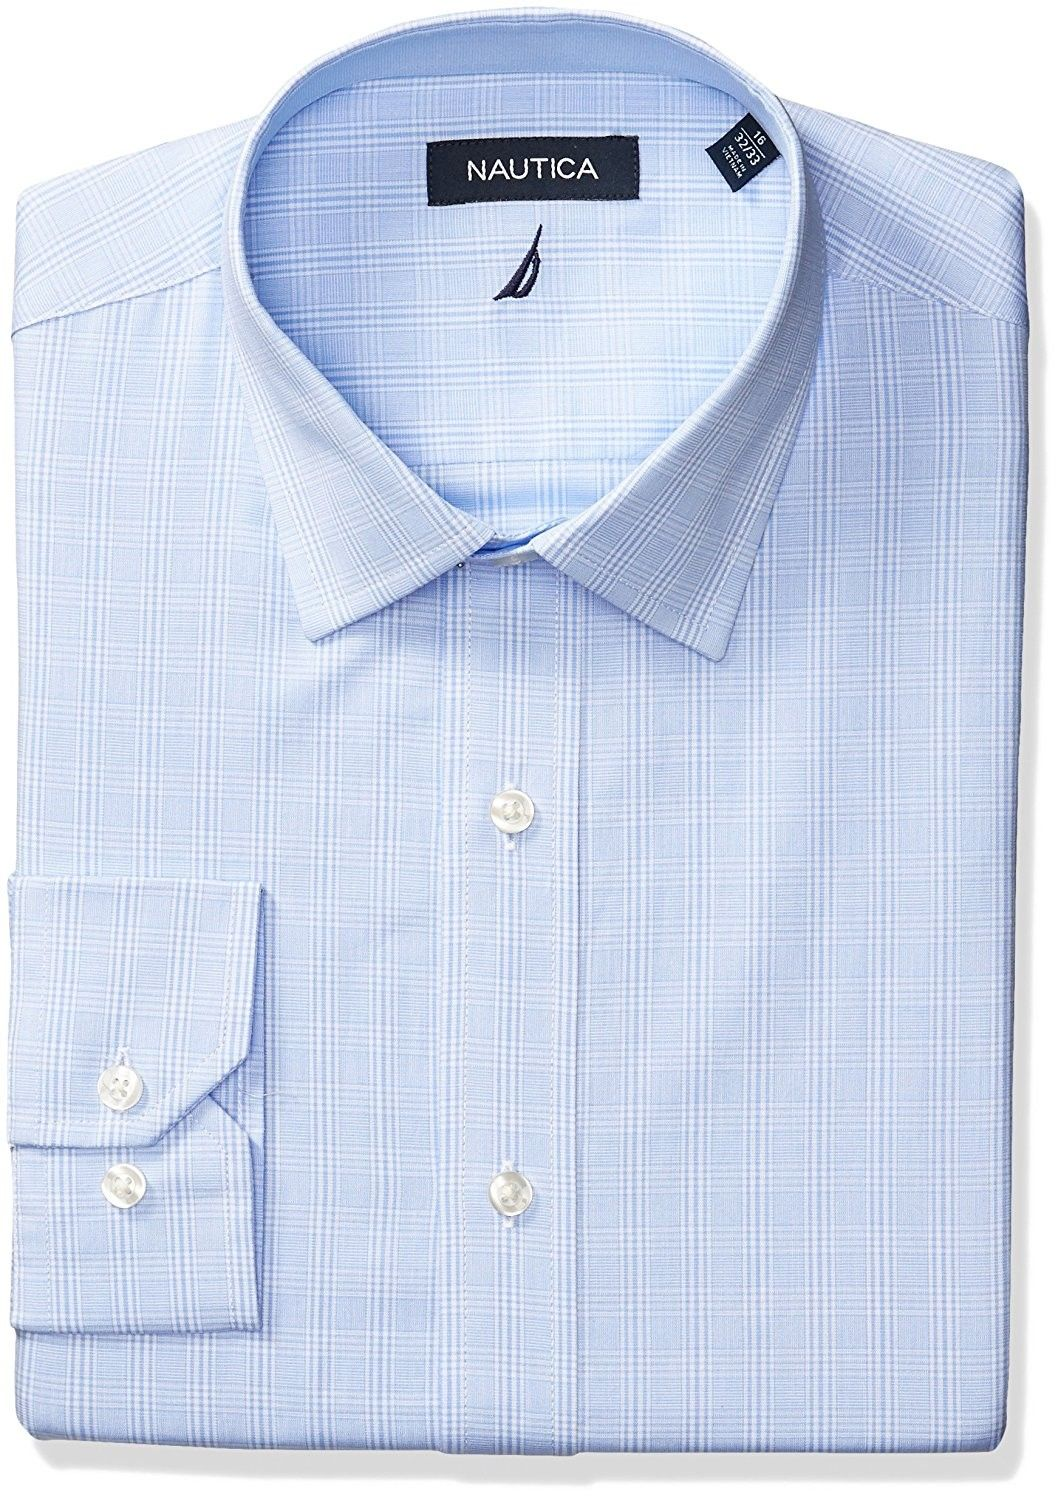 40b7fd1199f Men s Plaid Spread Collar Dress Shirt - Light Blue - CG17YCNAL6N in ...